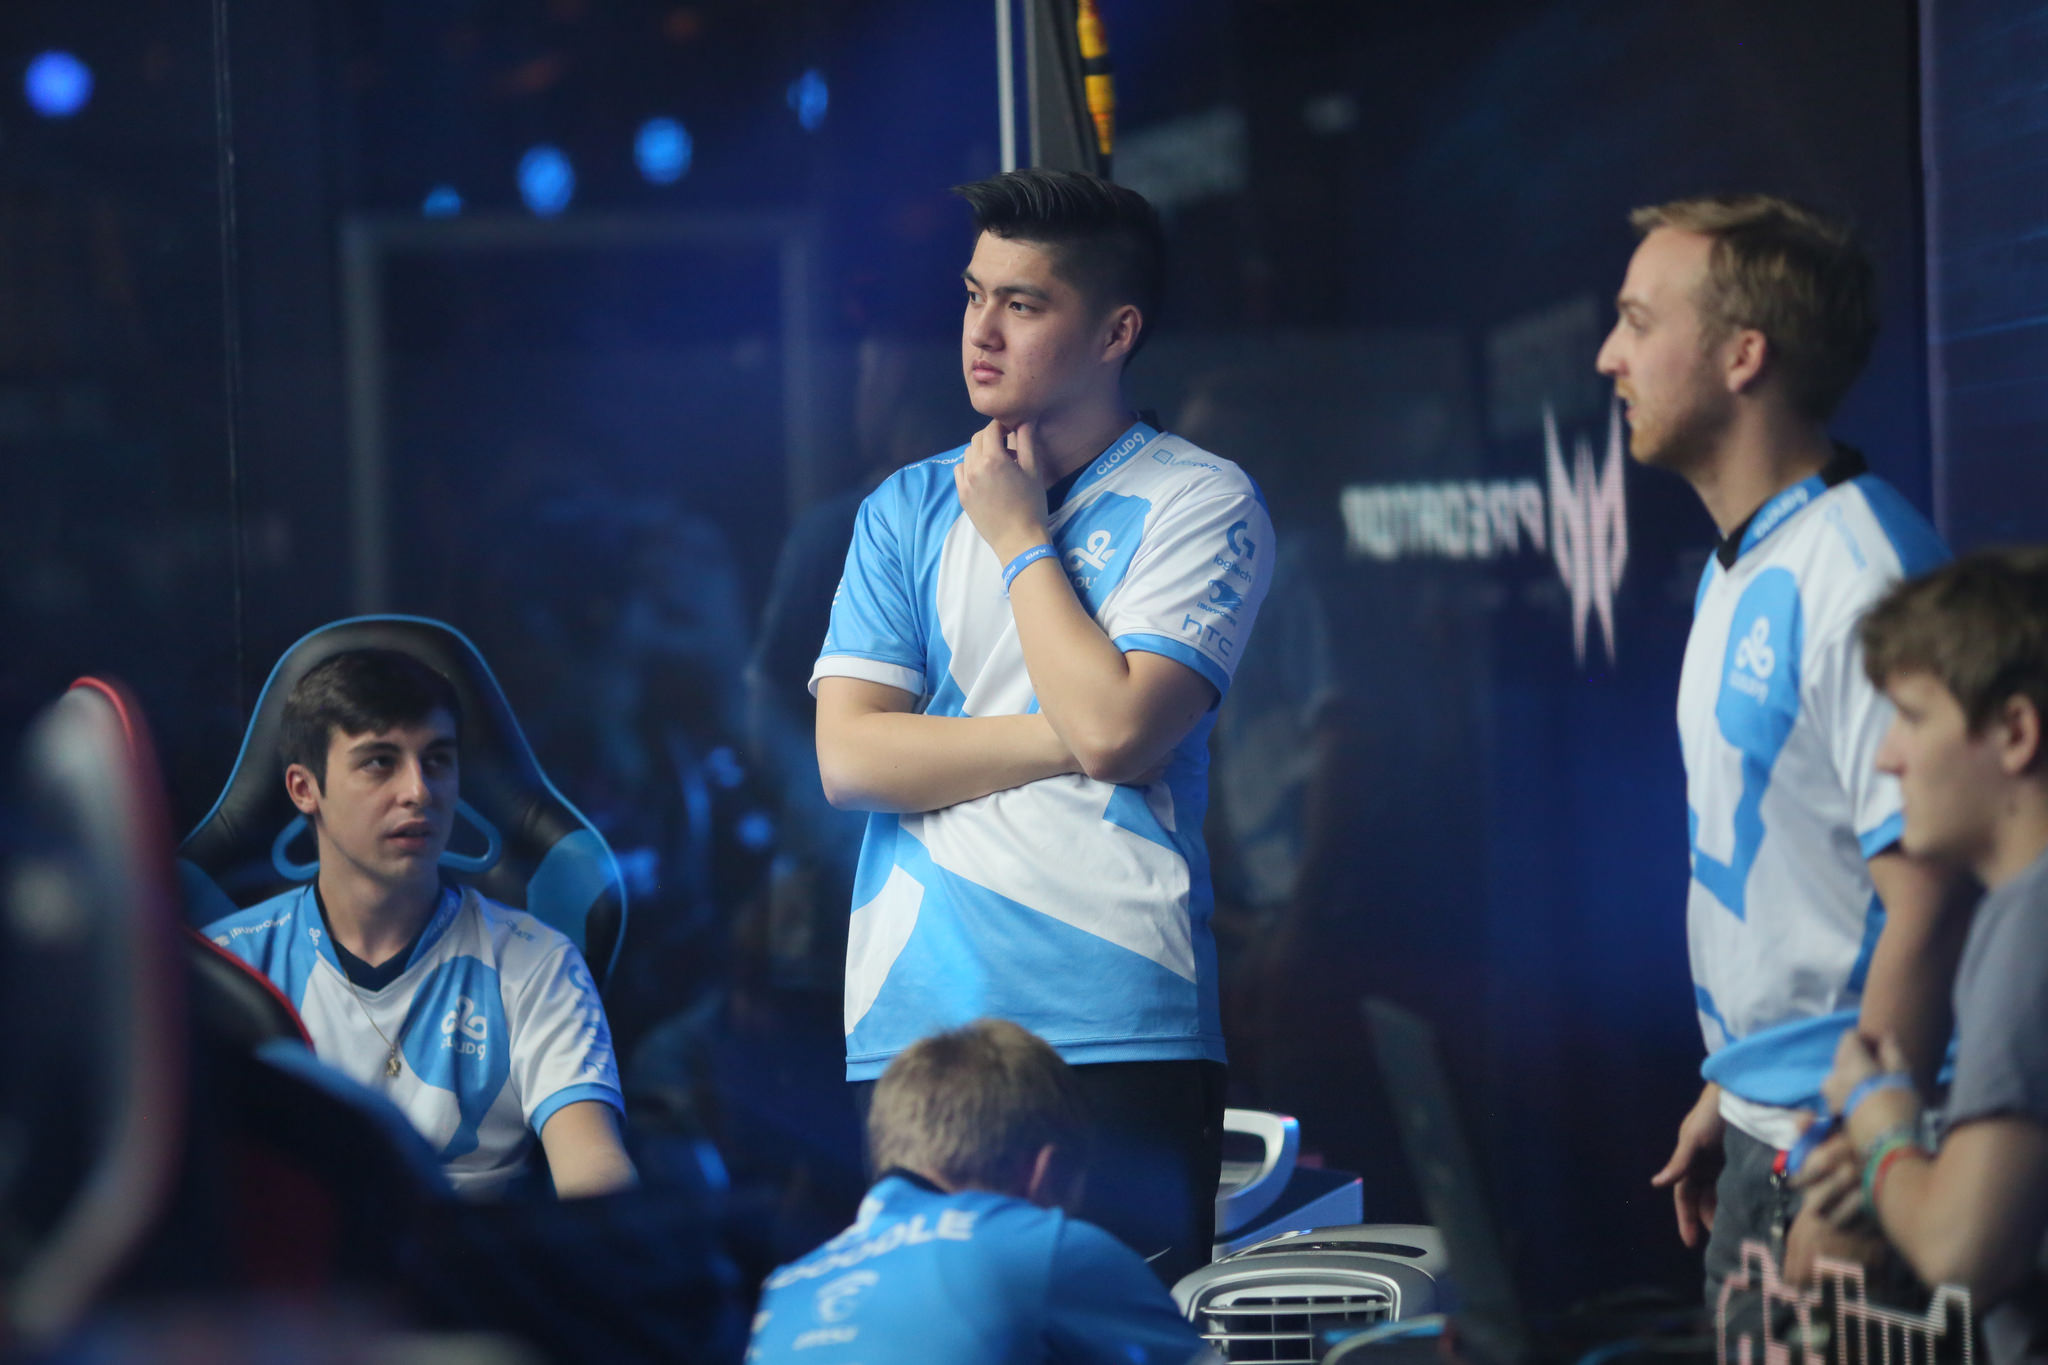 Cloud9 CS:GO